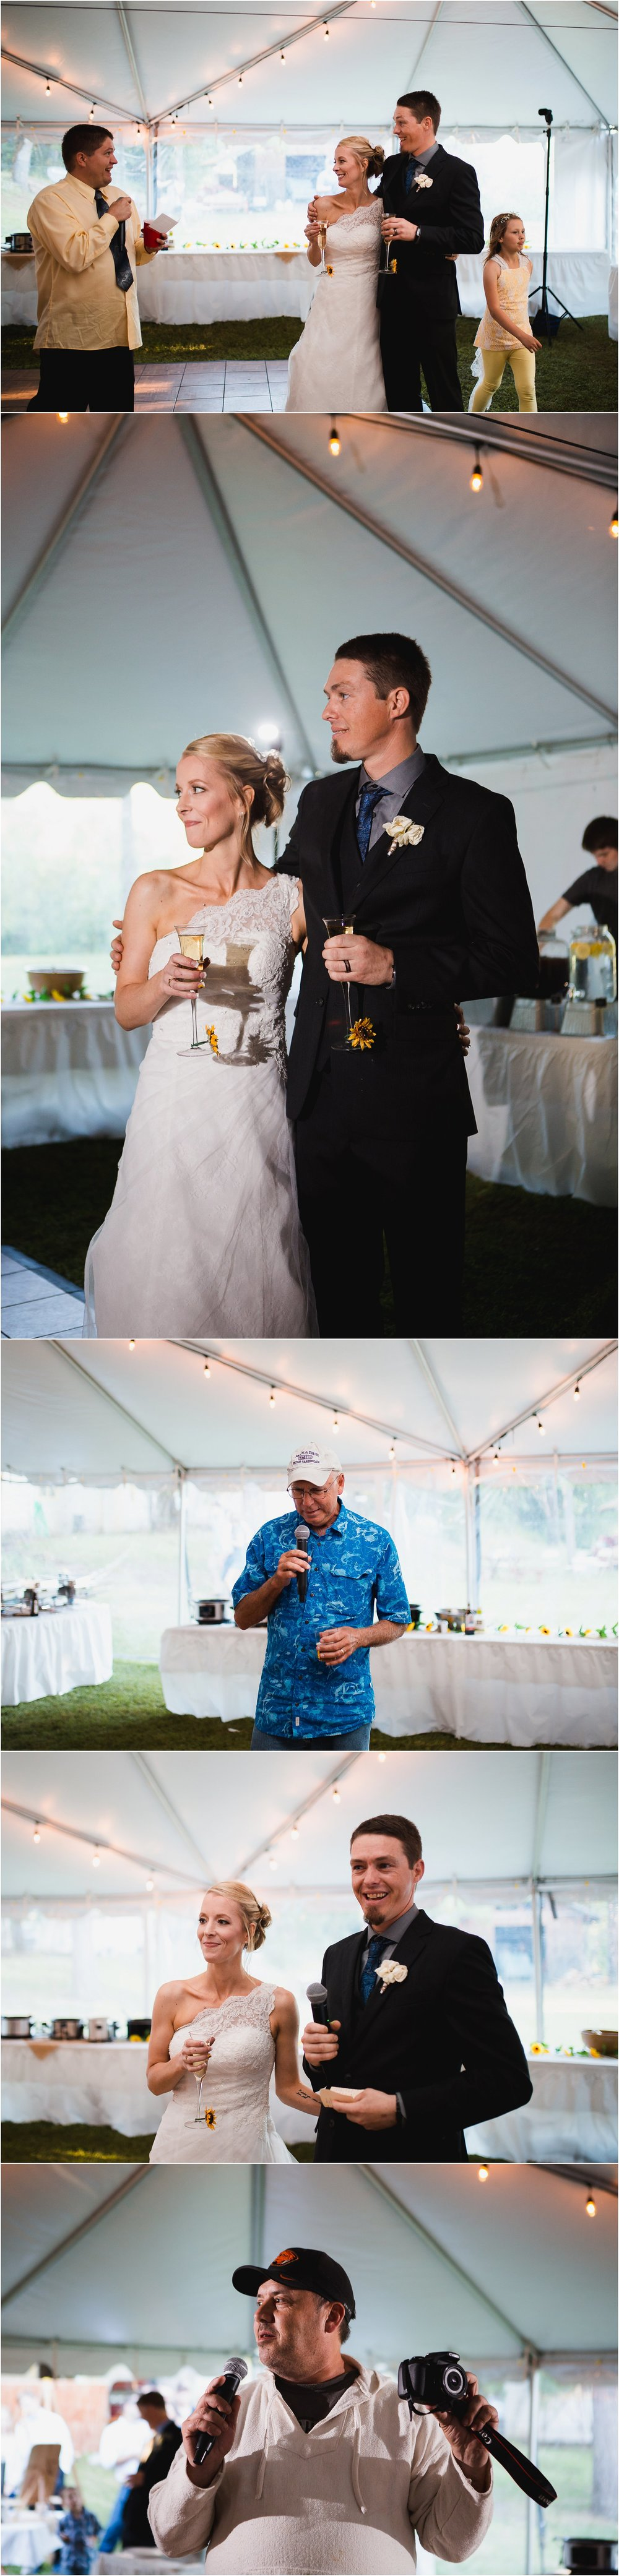 wedding-toasts.jpg